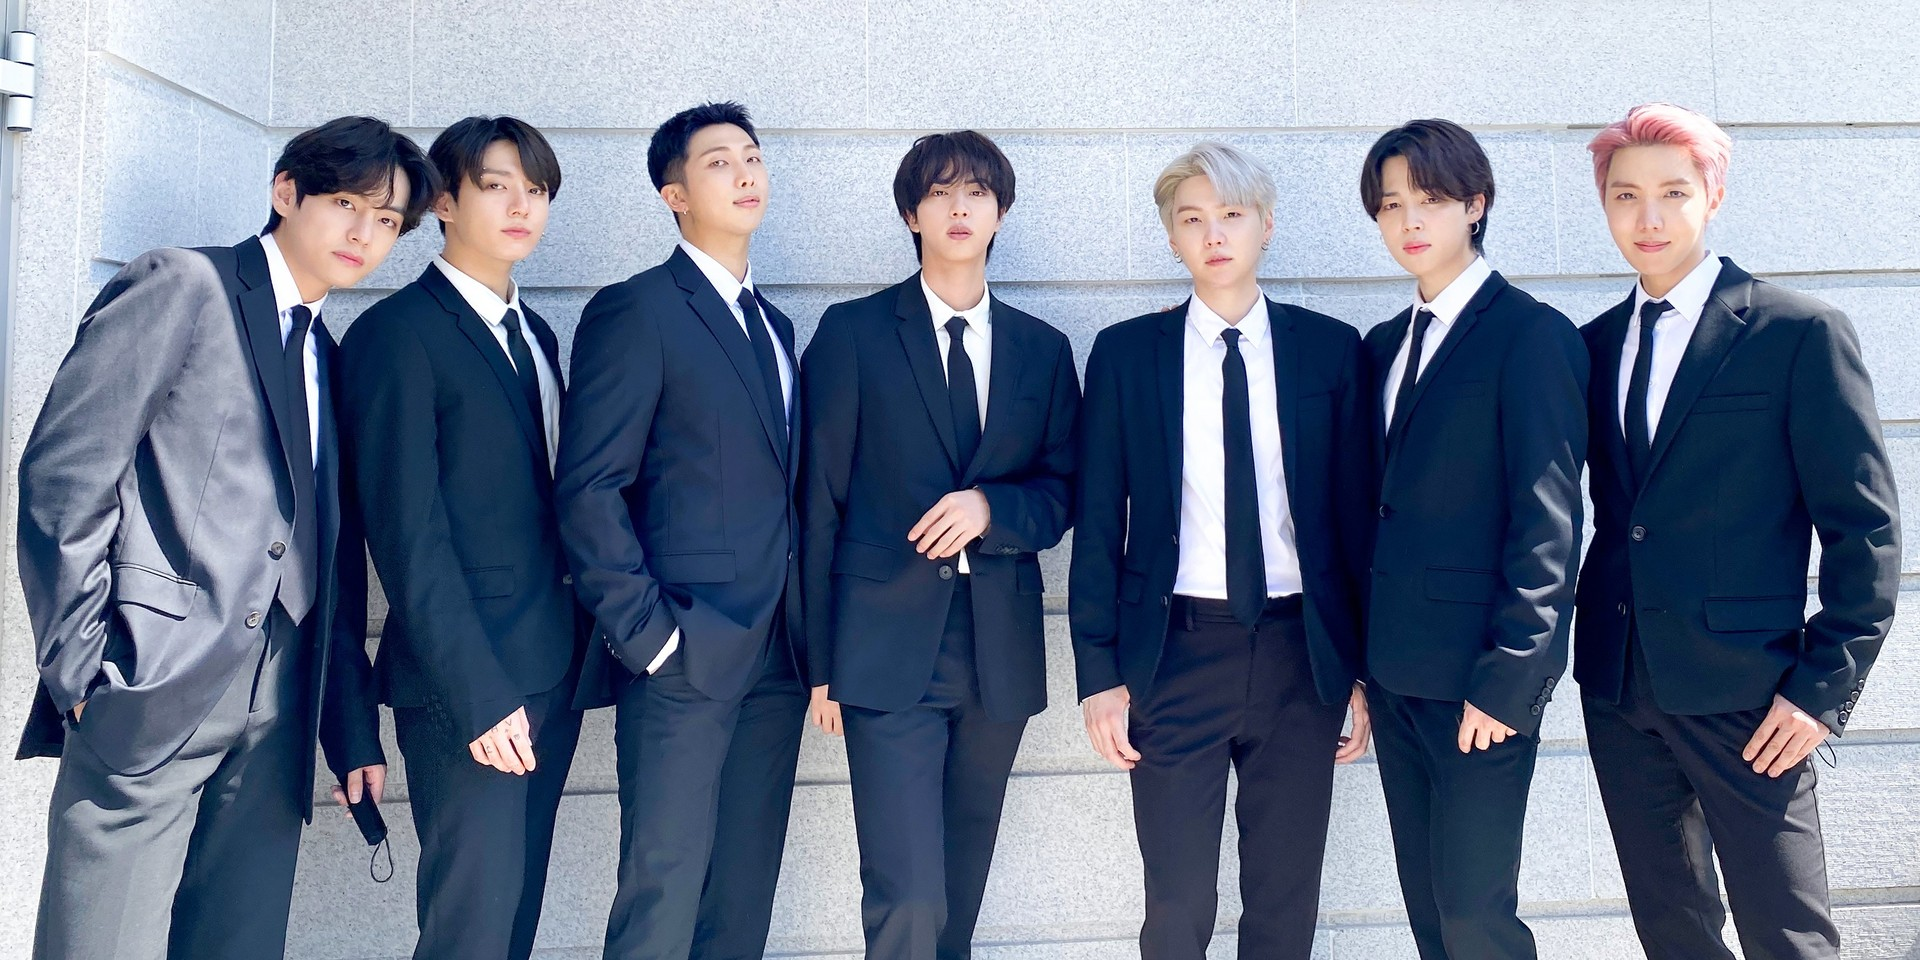 BTS appointed as Presidential Special Envoy for Future Generations and Culture, to give speech at 76th UN General Assembly